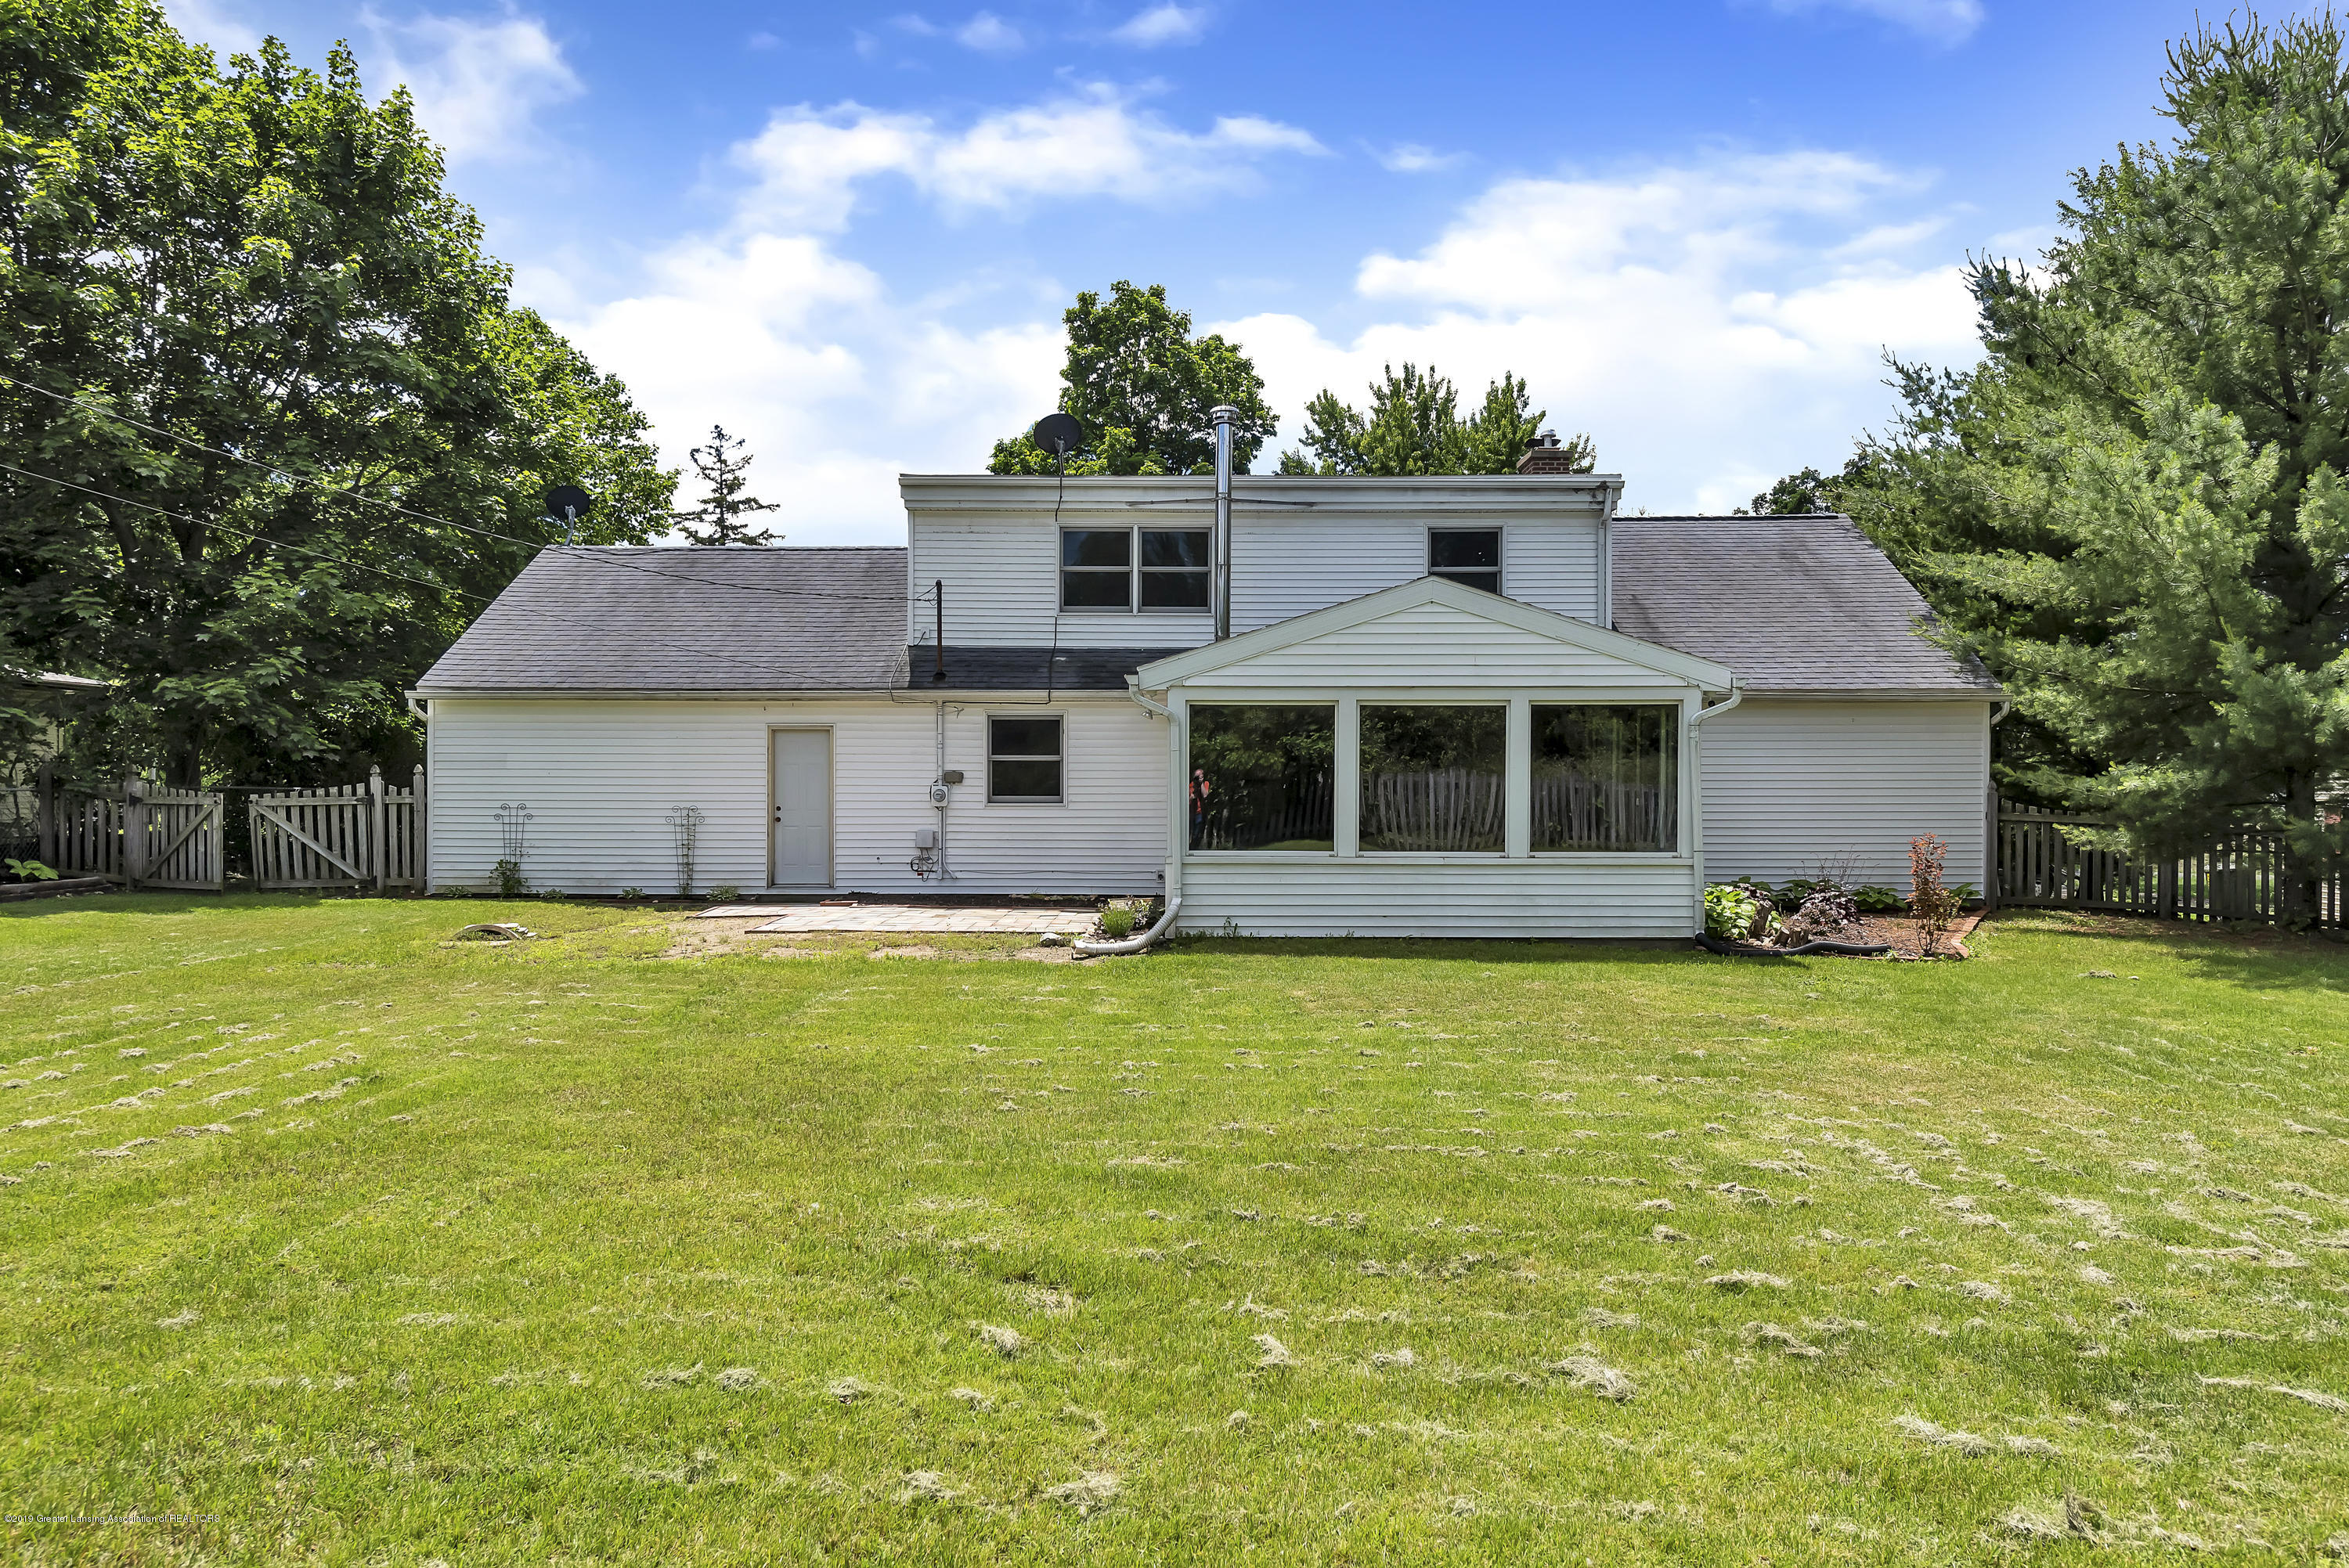 699 Sherwood Rd - 699-E-Sherwood-Rd-Williamston-windowstil - 35